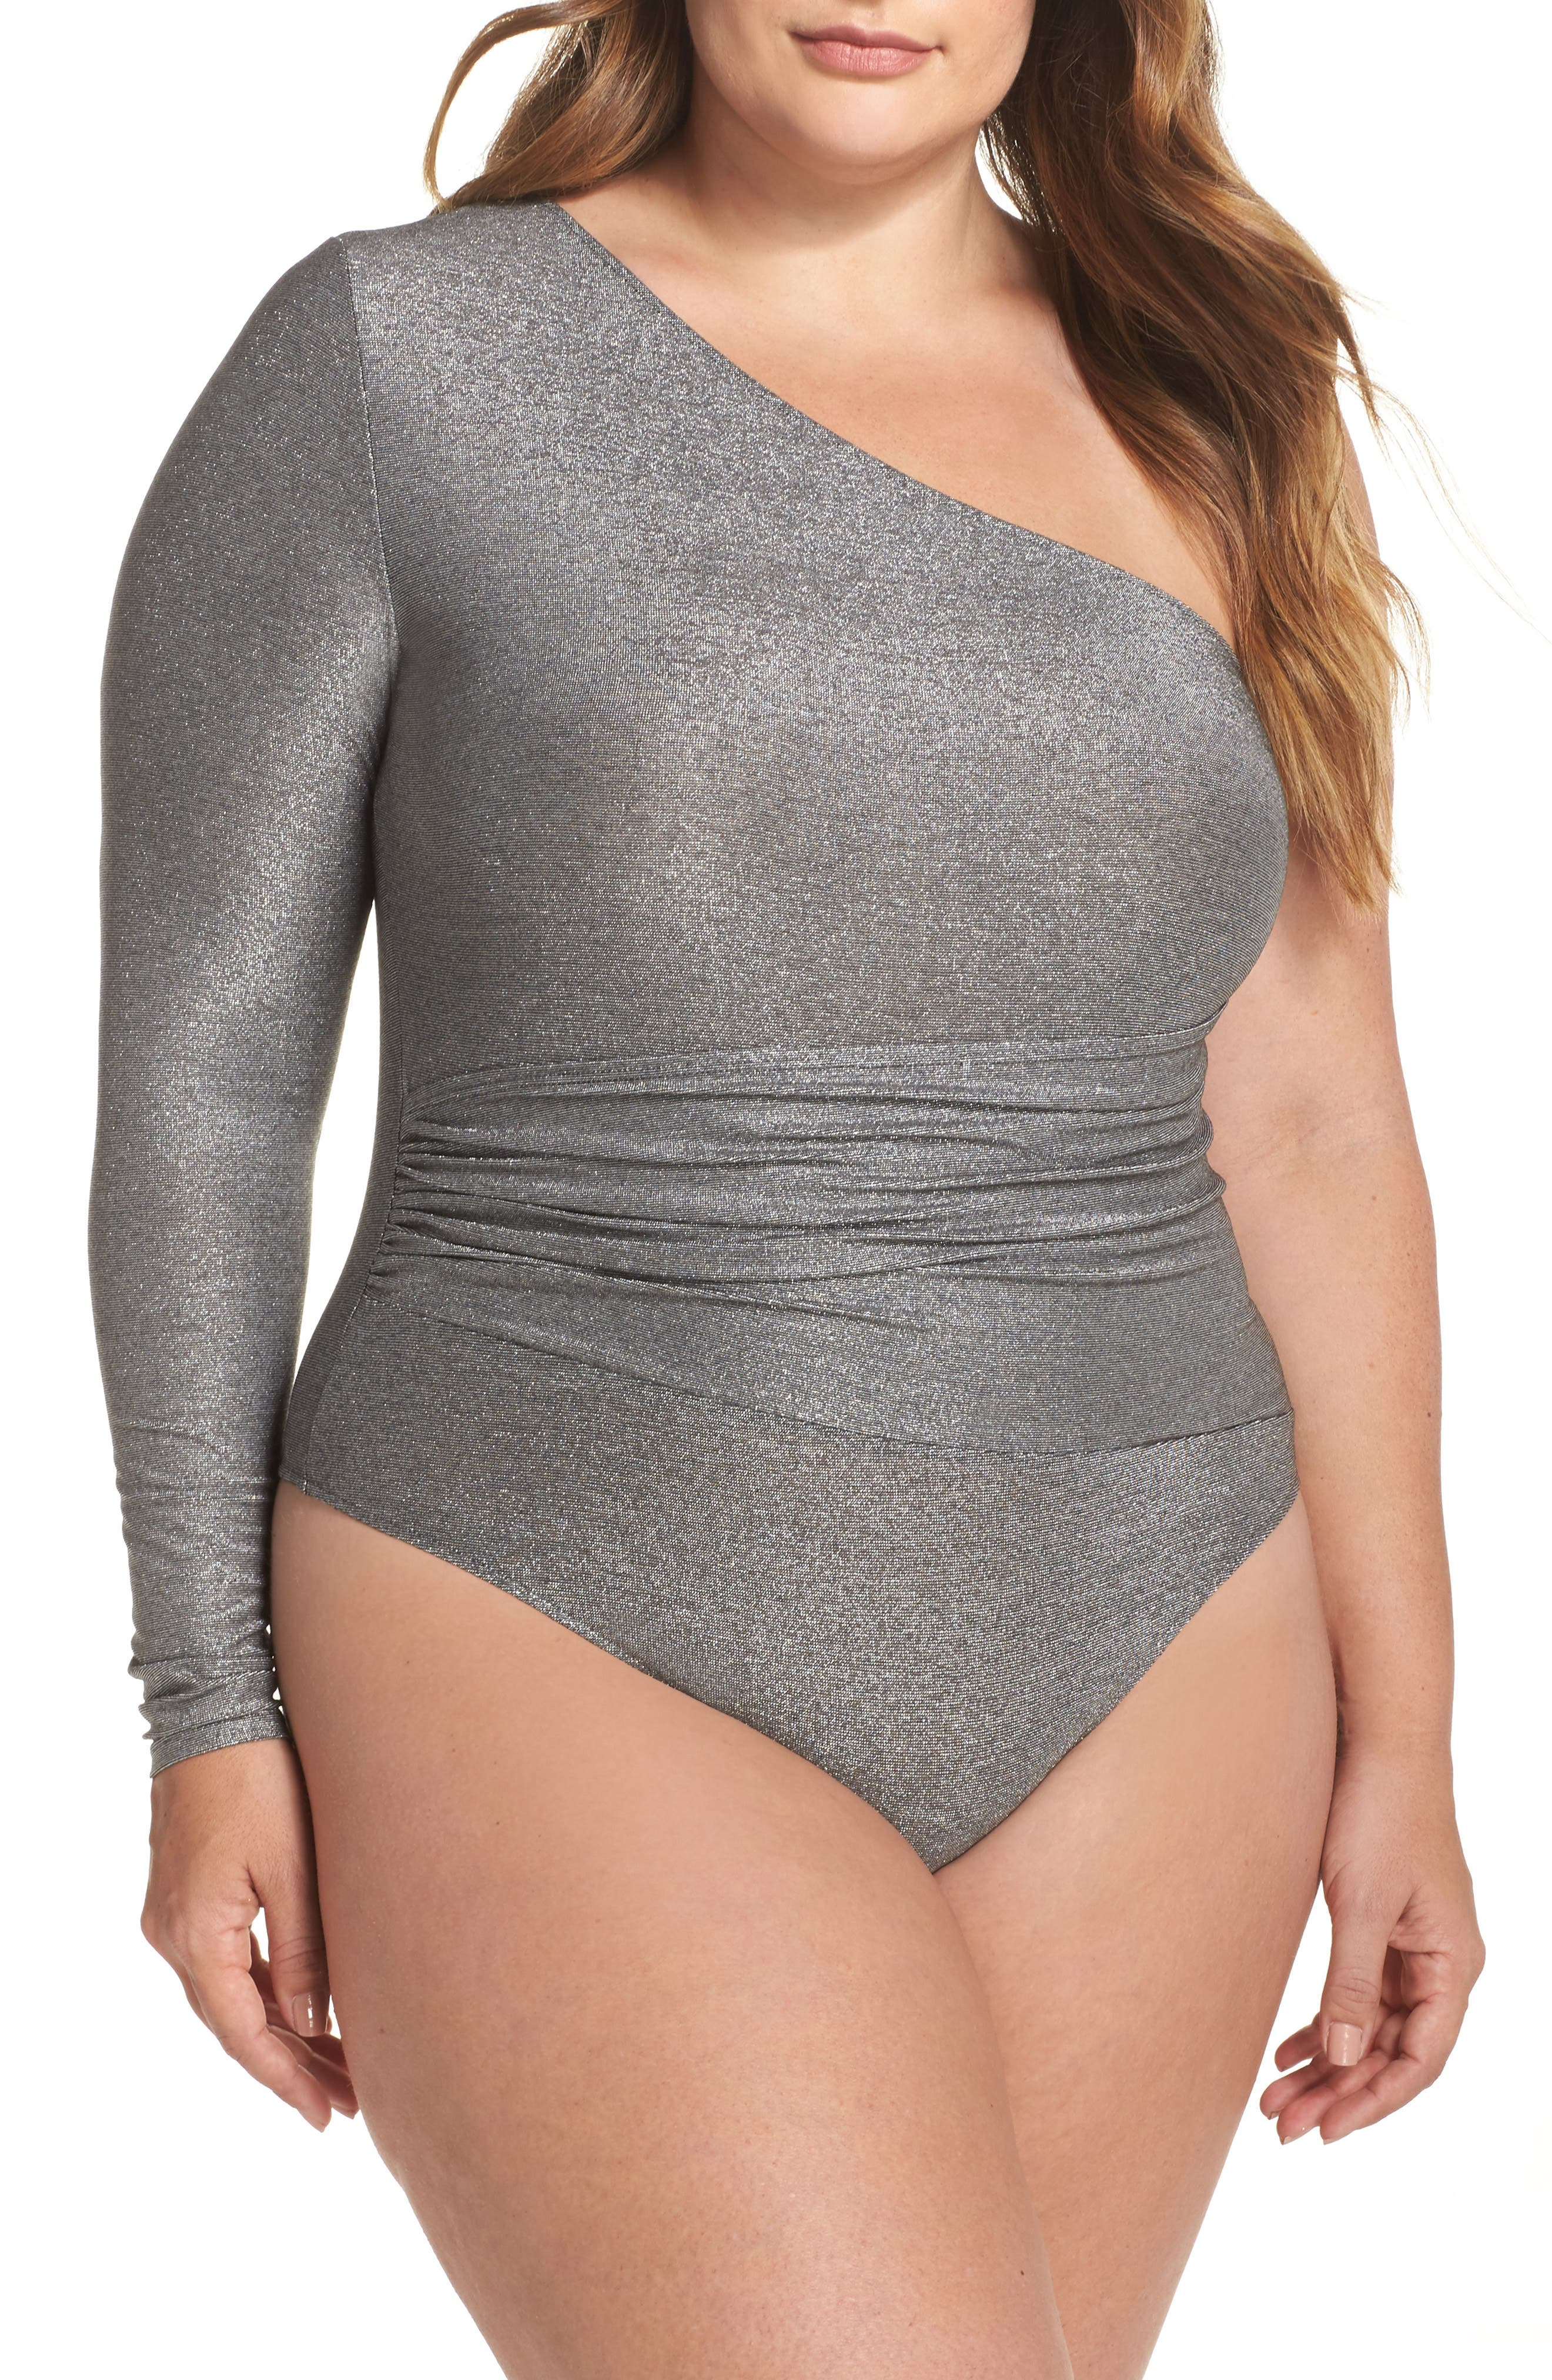 Main Image - Only Hearts One-Shoulder Thong Bodysuit (Plus Size)